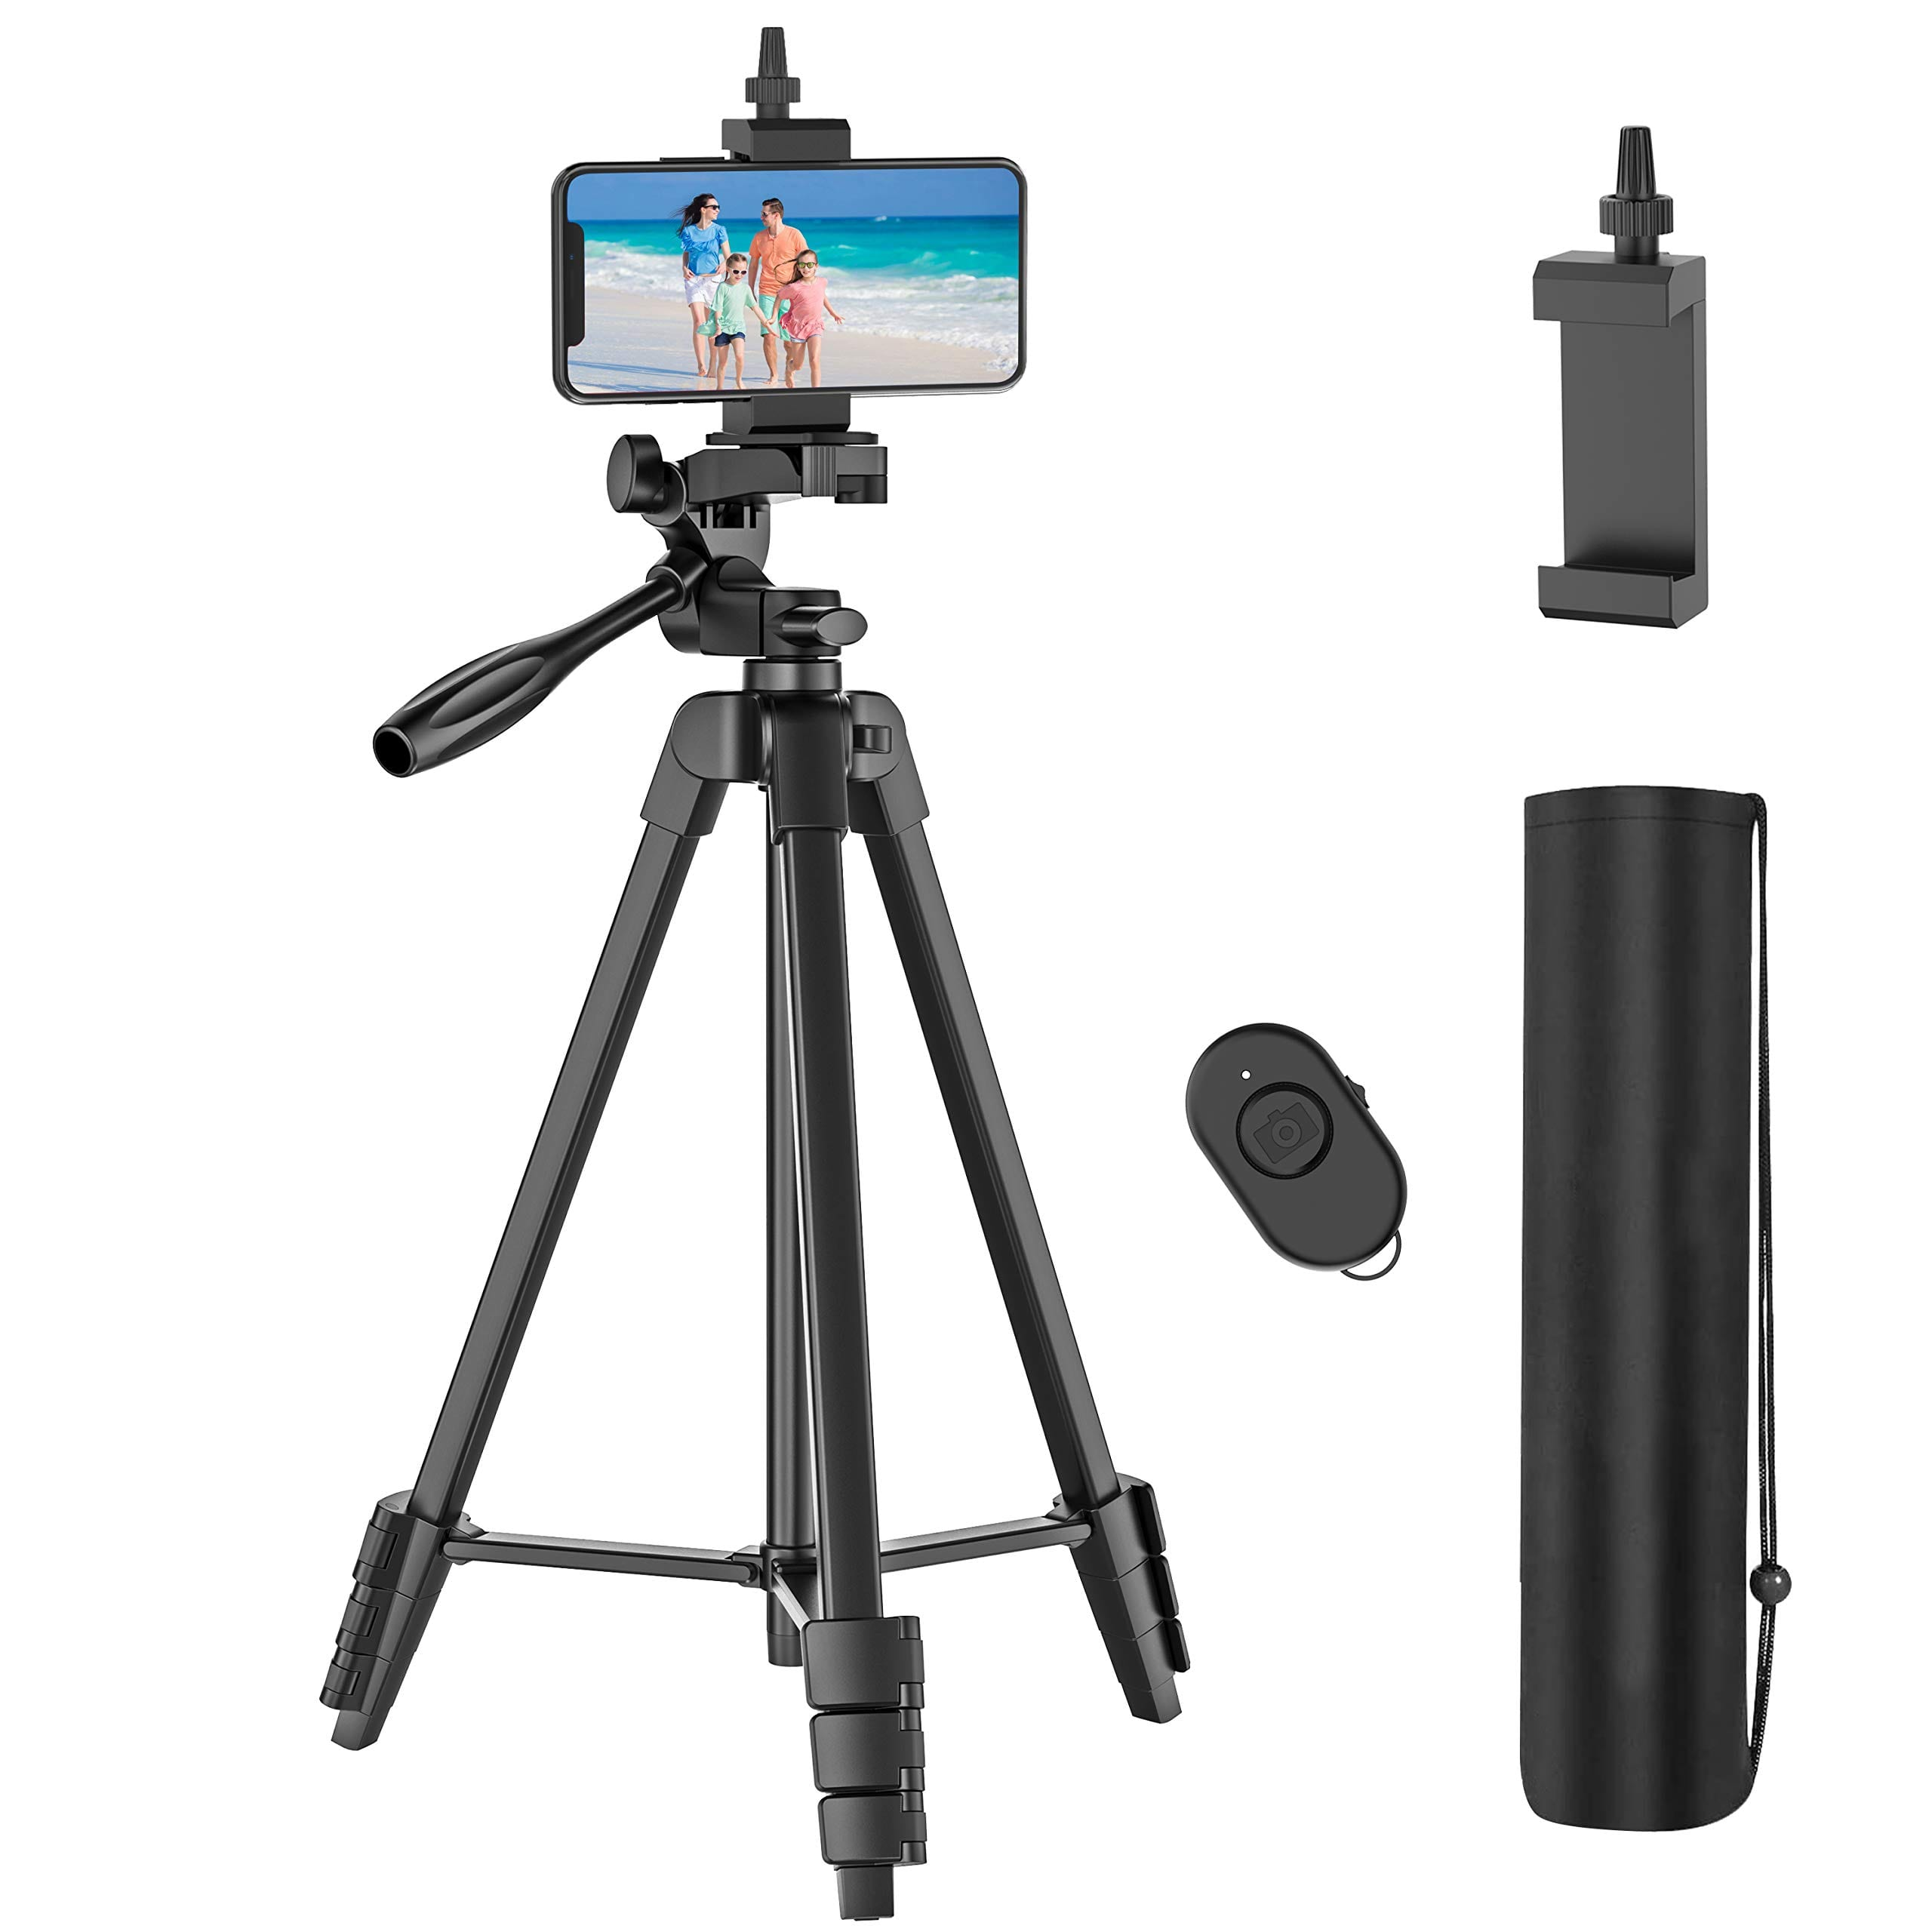 """54"""" Cell Phone Tripod with Rechargeable Remote, Aluminum Lightweight Travel Tripod with Extendable Tripod Stand, Phone Holder and Carry Bag, for Cellphones/GoPro/Digital  - $9.99"""